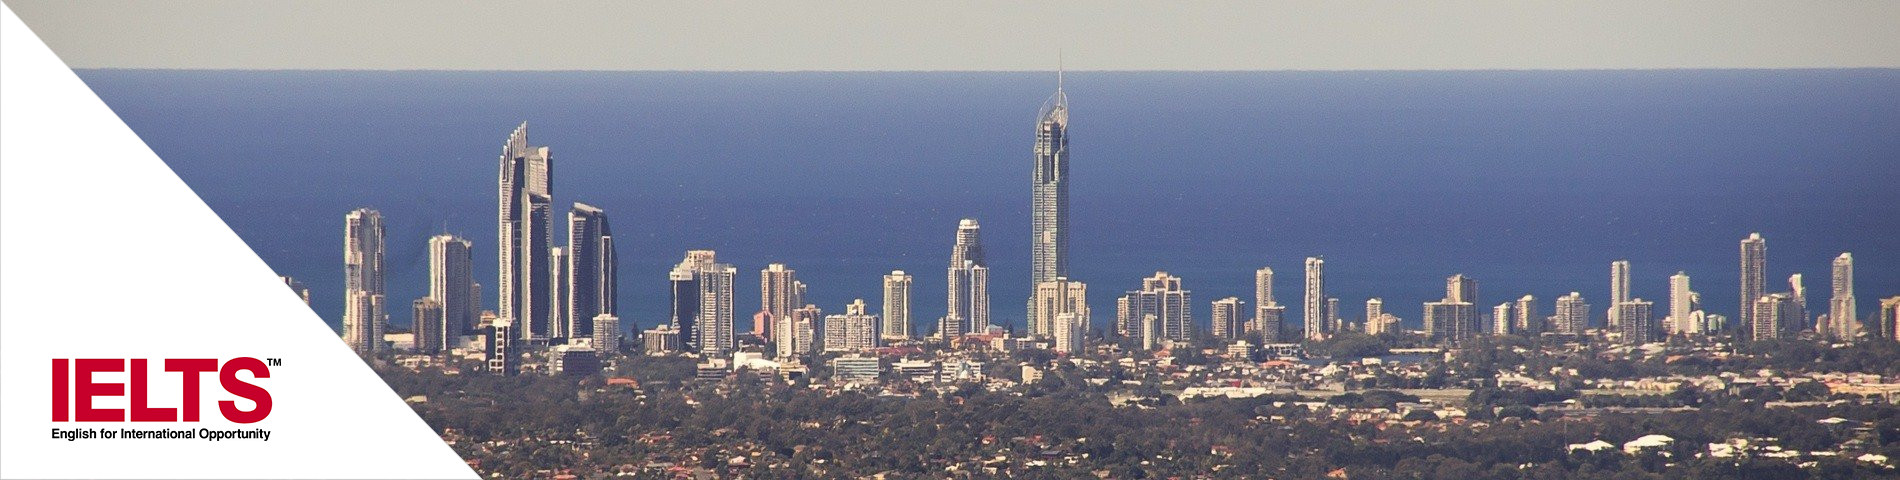 Gold Coast - IELTS